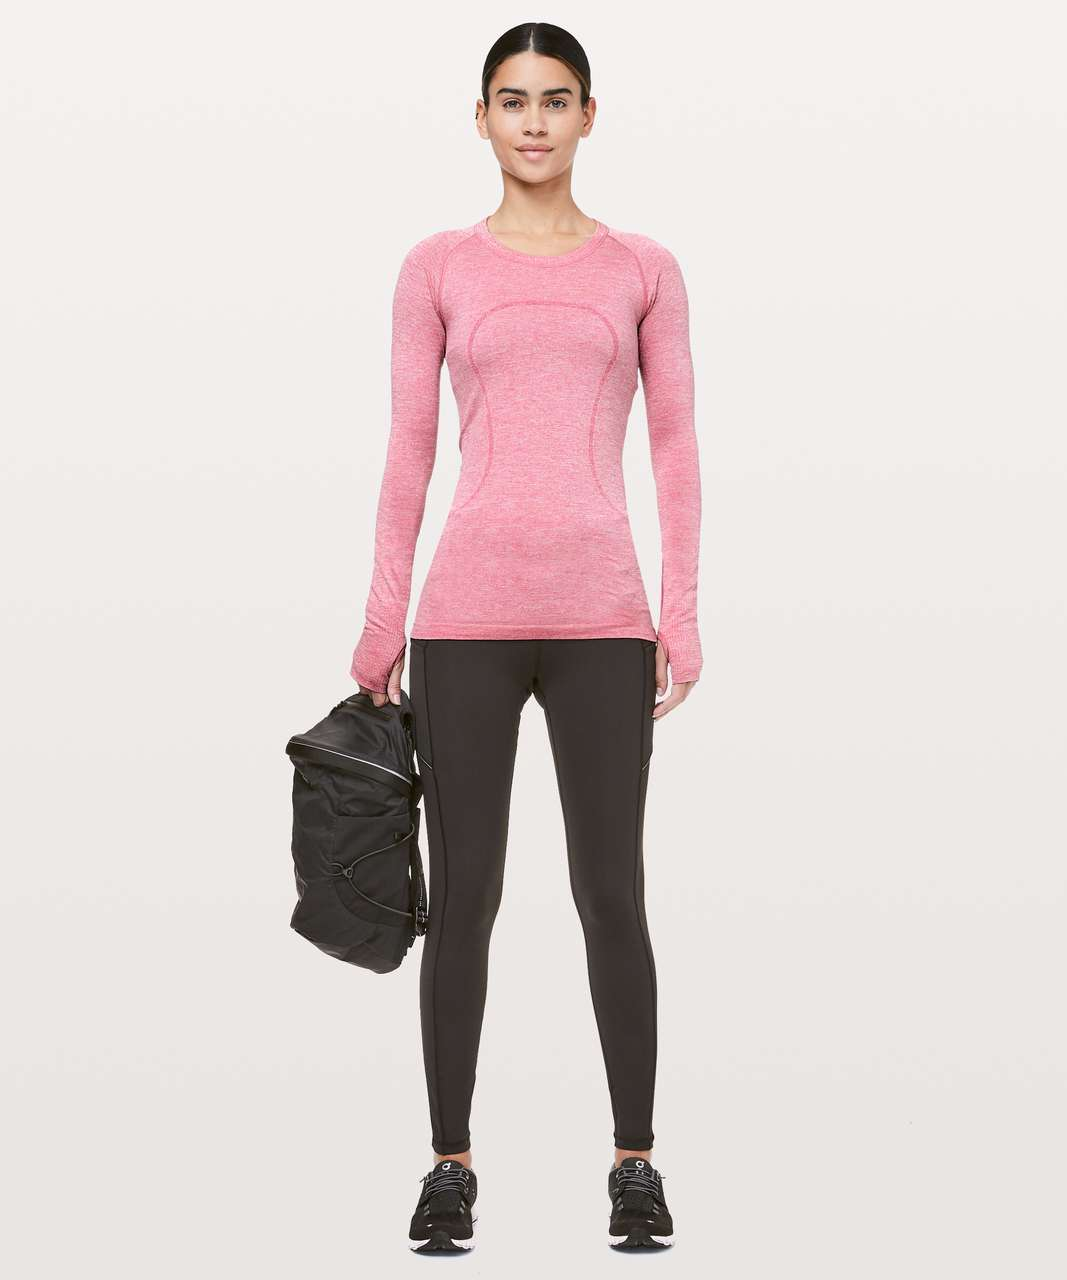 Lululemon Swiftly Tech Long Sleeve Crew *Sparkle - Violet Red / White / Silver